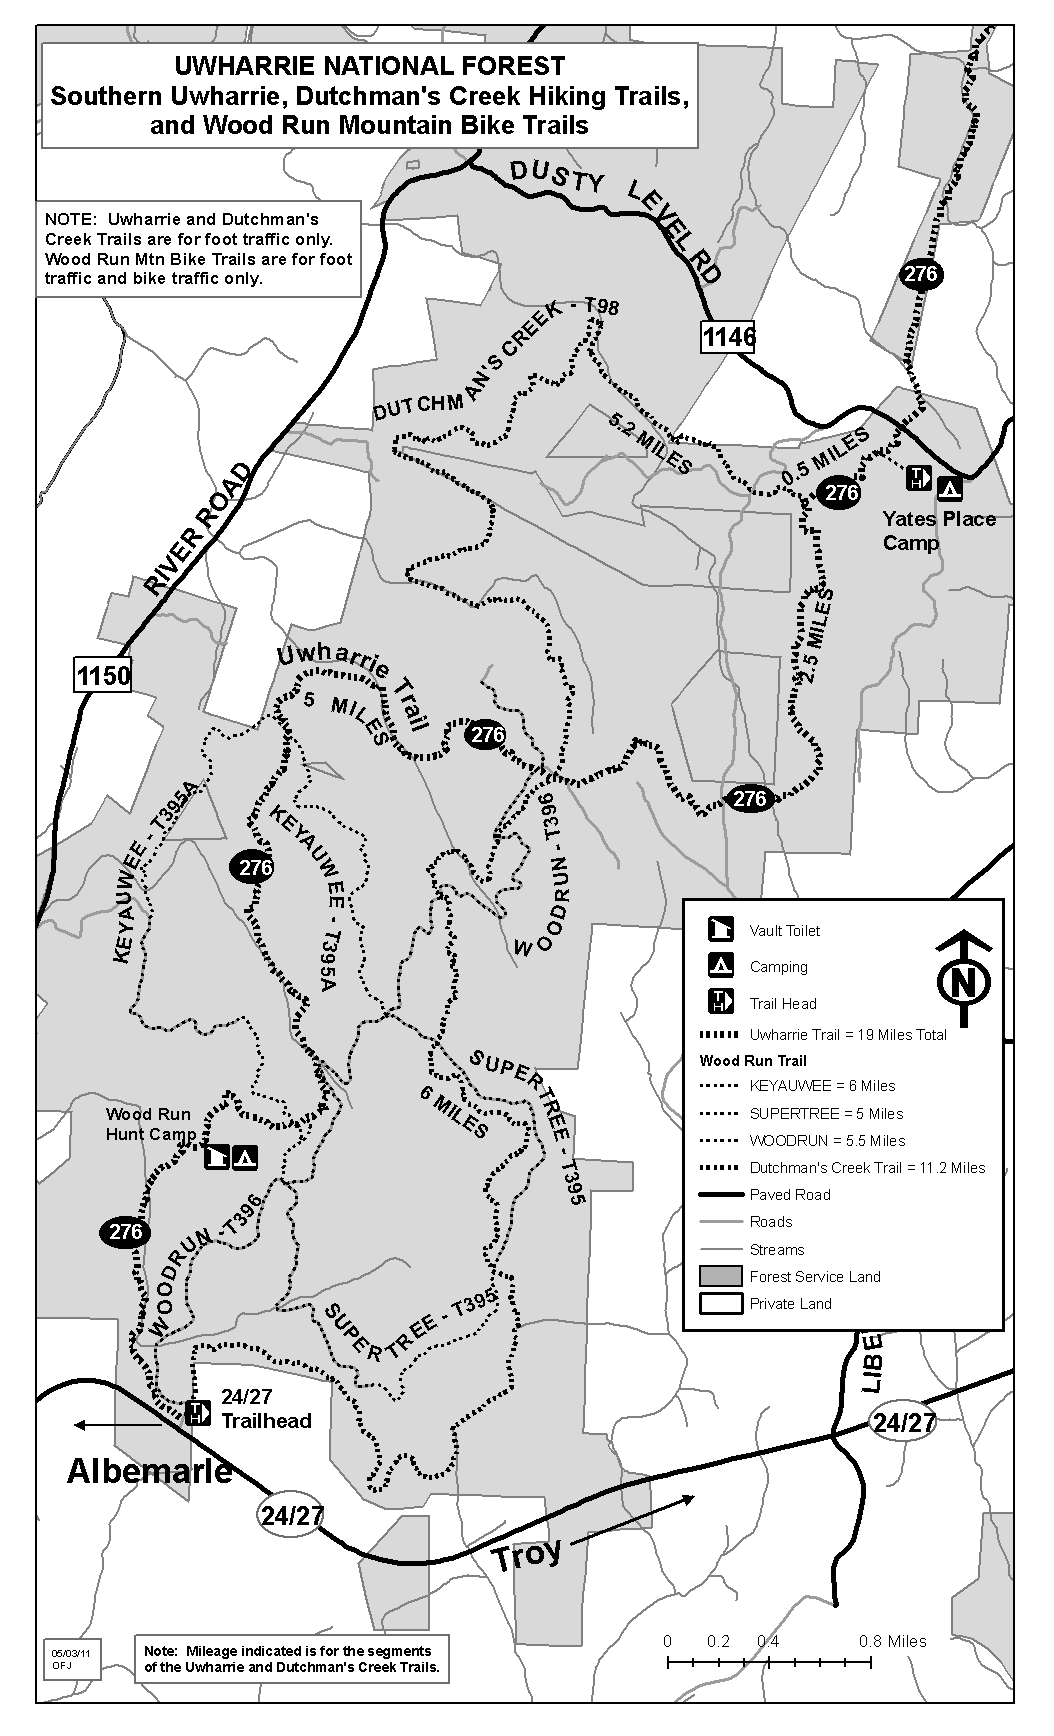 Map includes the southern portion of the Uwharrie Trail, Dutchman's Cr. Trail & all Wood Run Trails